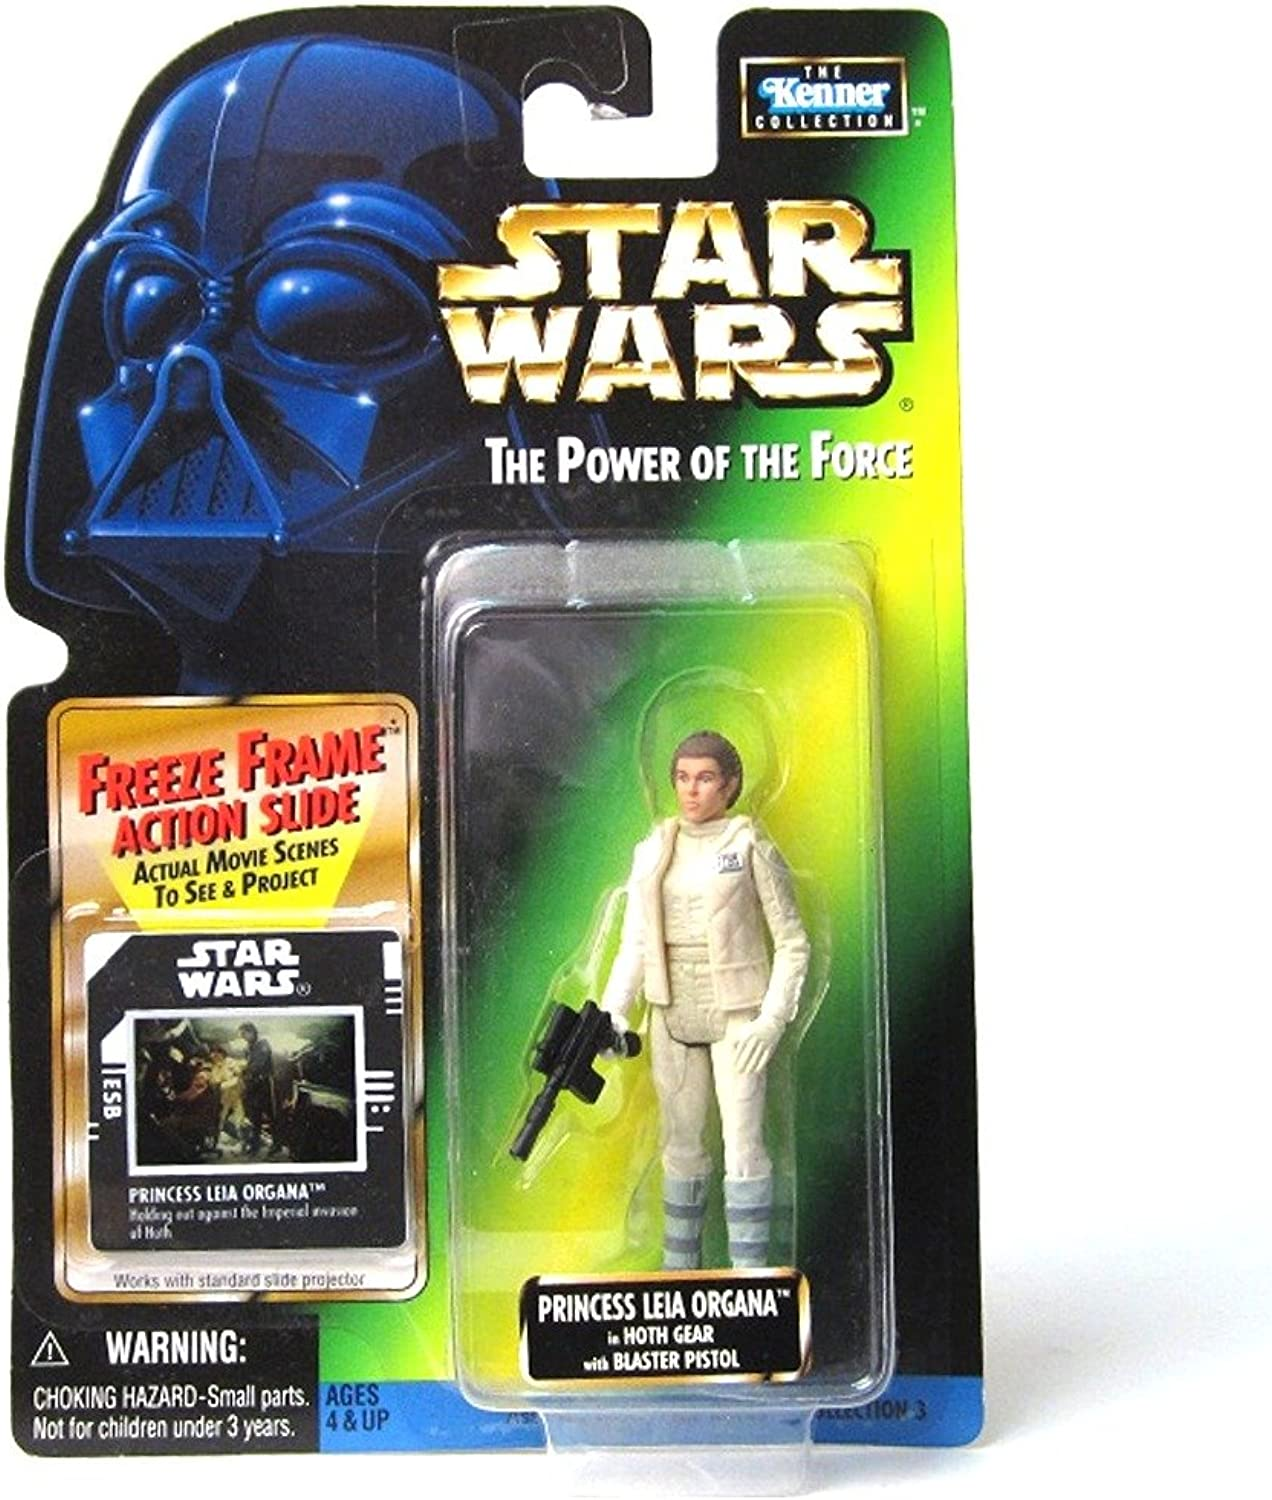 Toy Rocket Star Wars Power of the Force Fan Club Exclusive Princess Leia Organa in Hoth Gear Action Figure